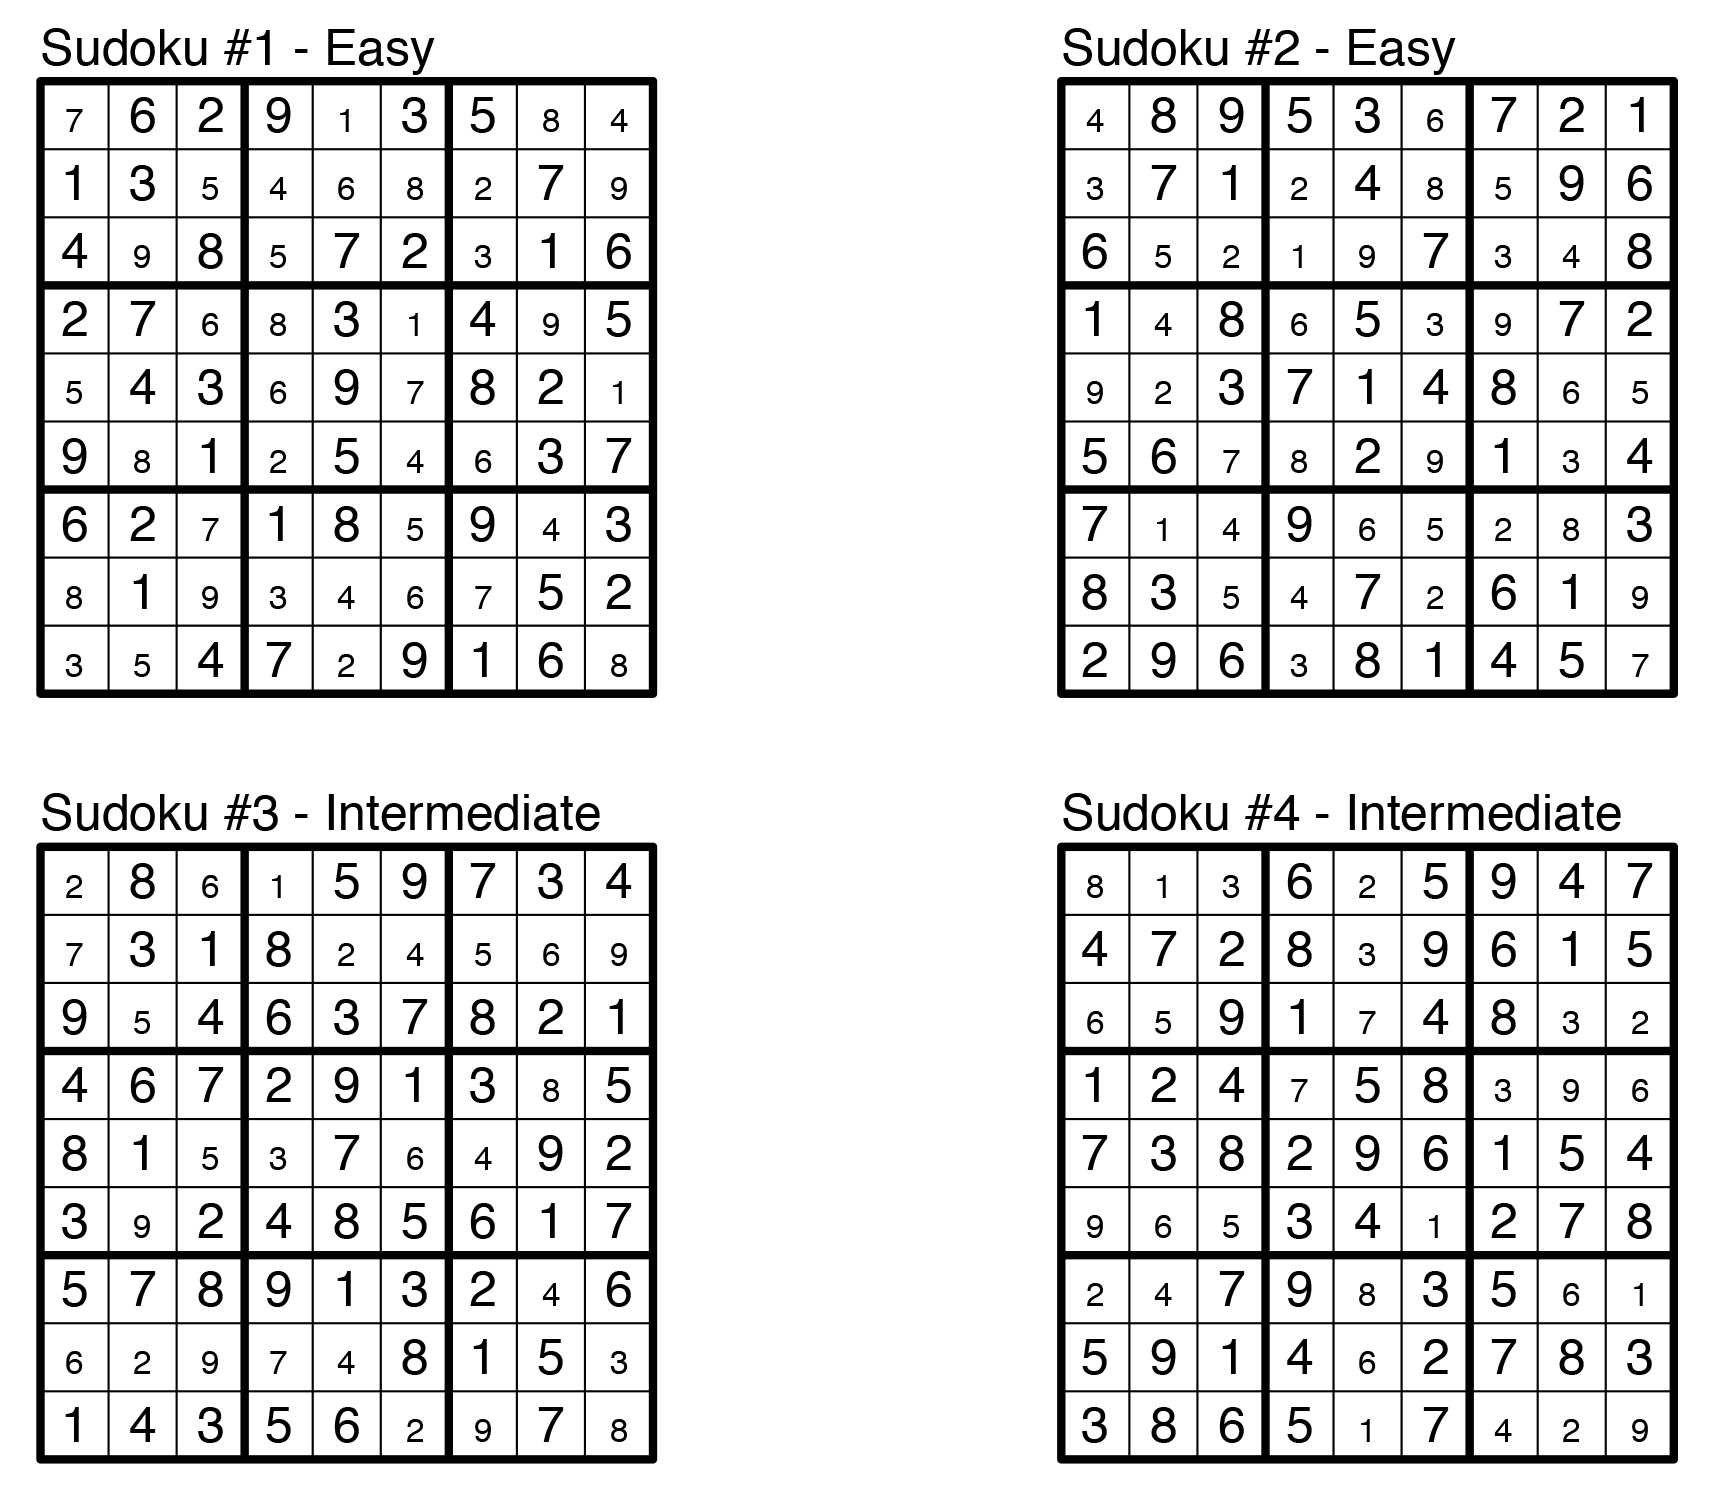 Puzzle Solutions: Issue 1: Aug. 23, 2013